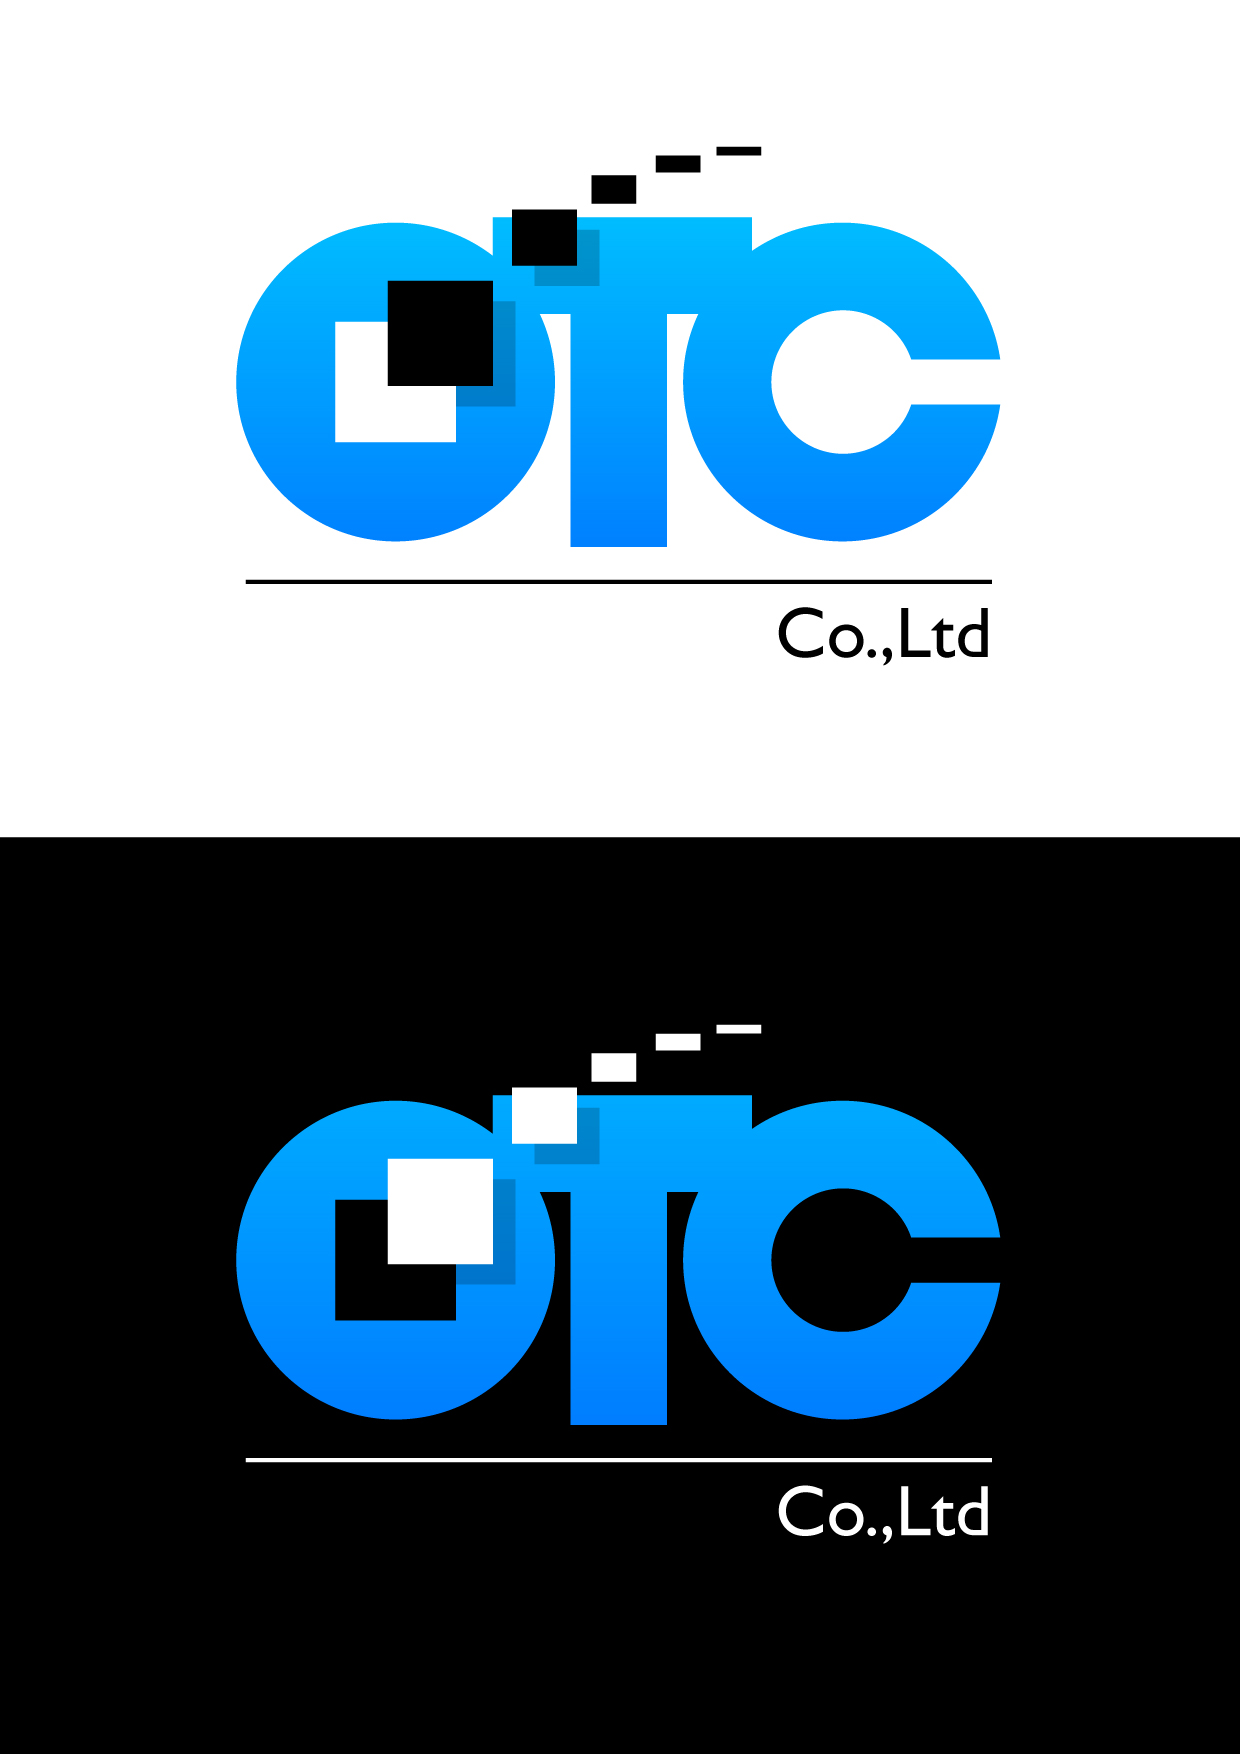 Logo Design by Wilfredo Mendoza - Entry No. 136 in the Logo Design Contest Unique Logo Design Wanted for OTC Co.,Ltd..